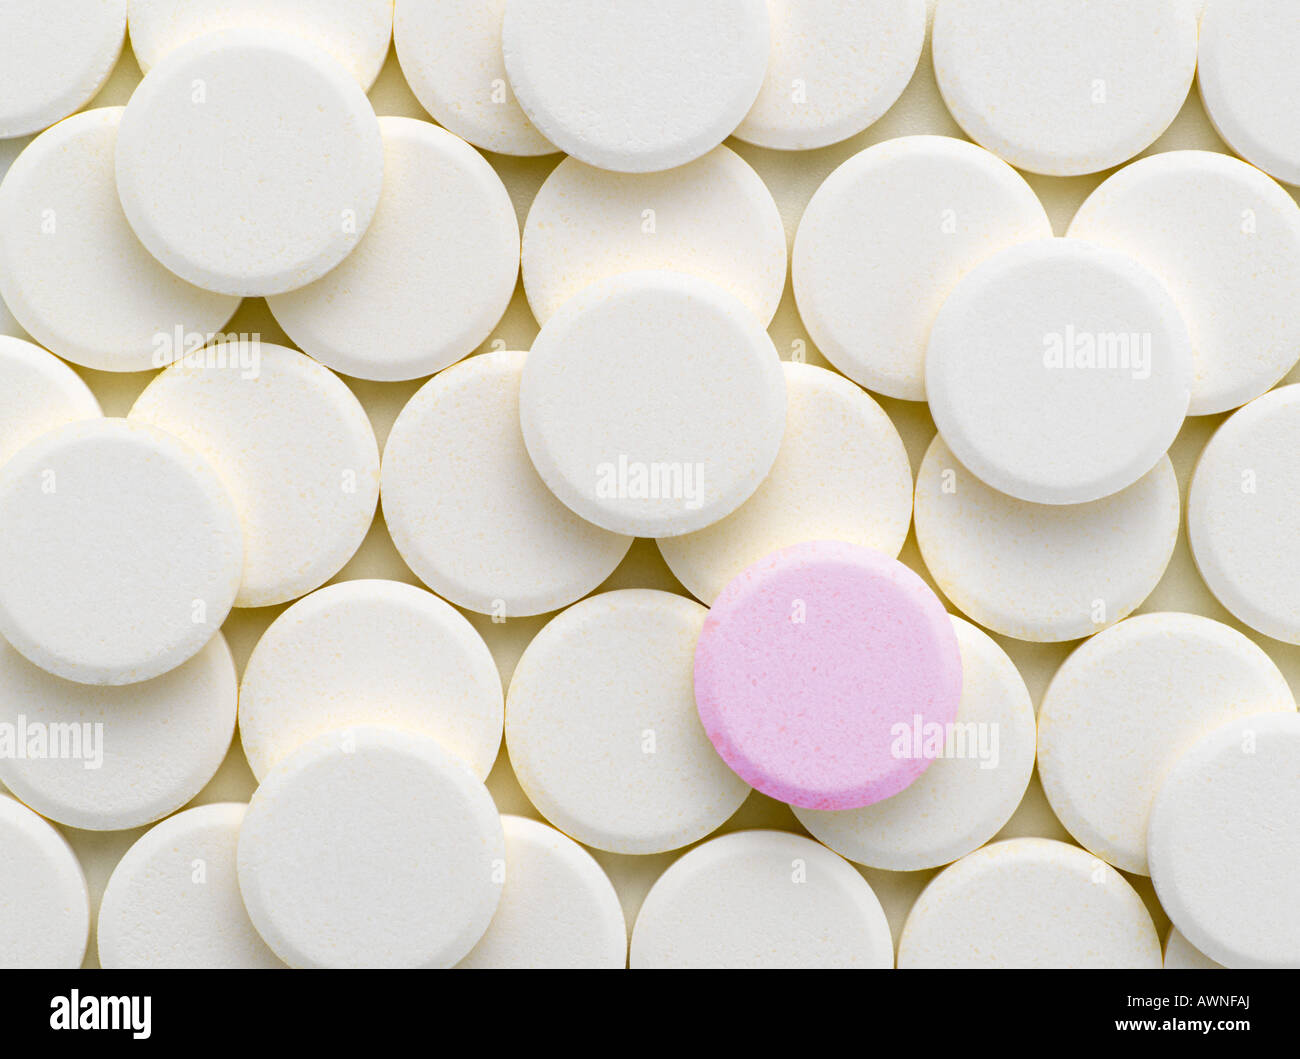 A pink tablet amongst white tablets - Stock Image